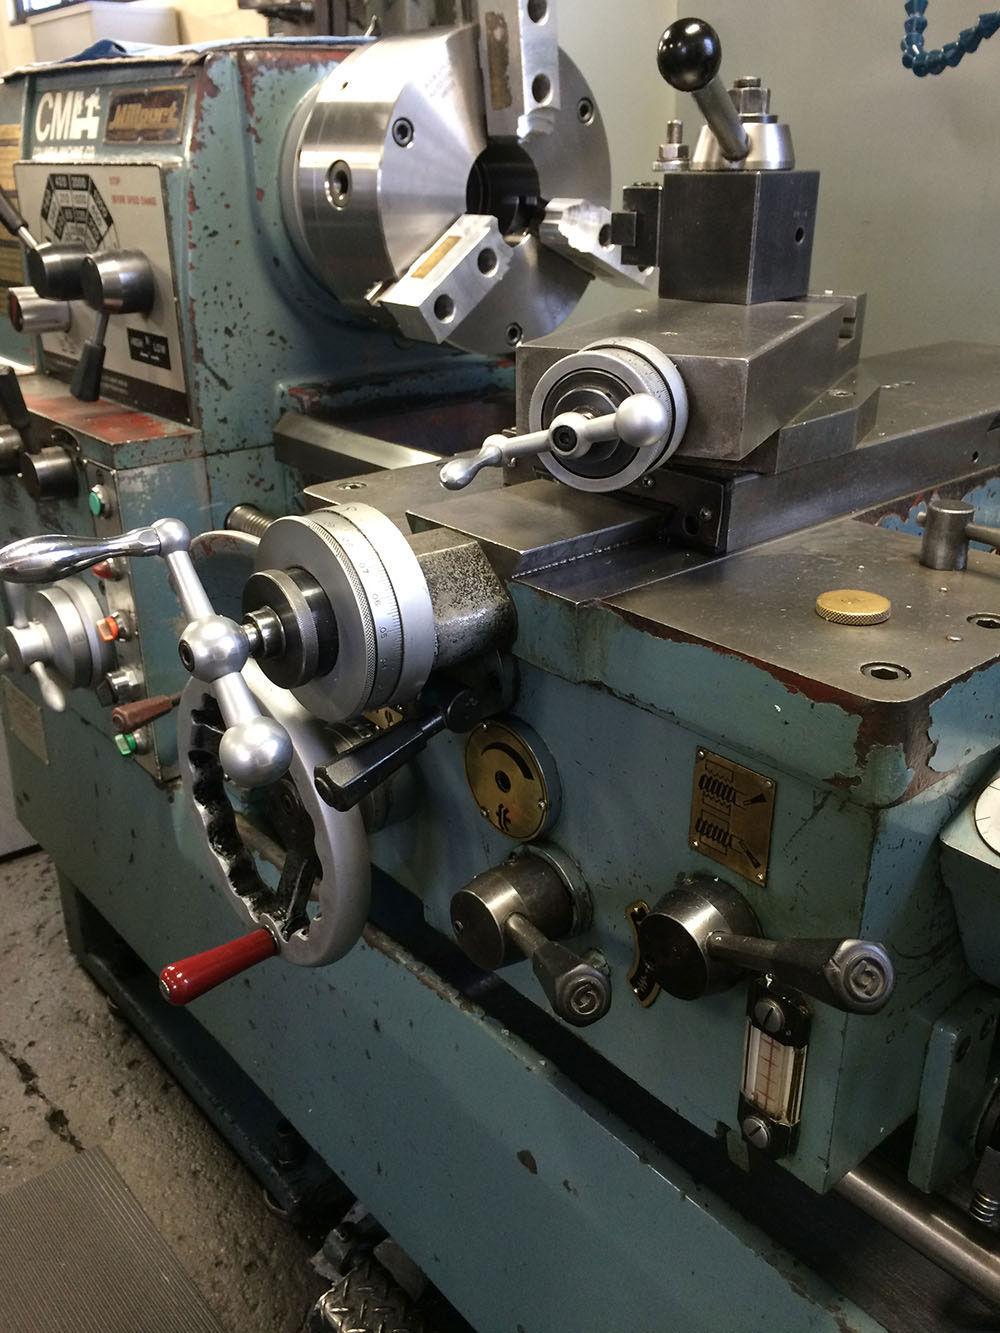 Millport 1740 Manual Lathe Outfitted with a Buck Brand Chuck and Aluminum Soft Jaws